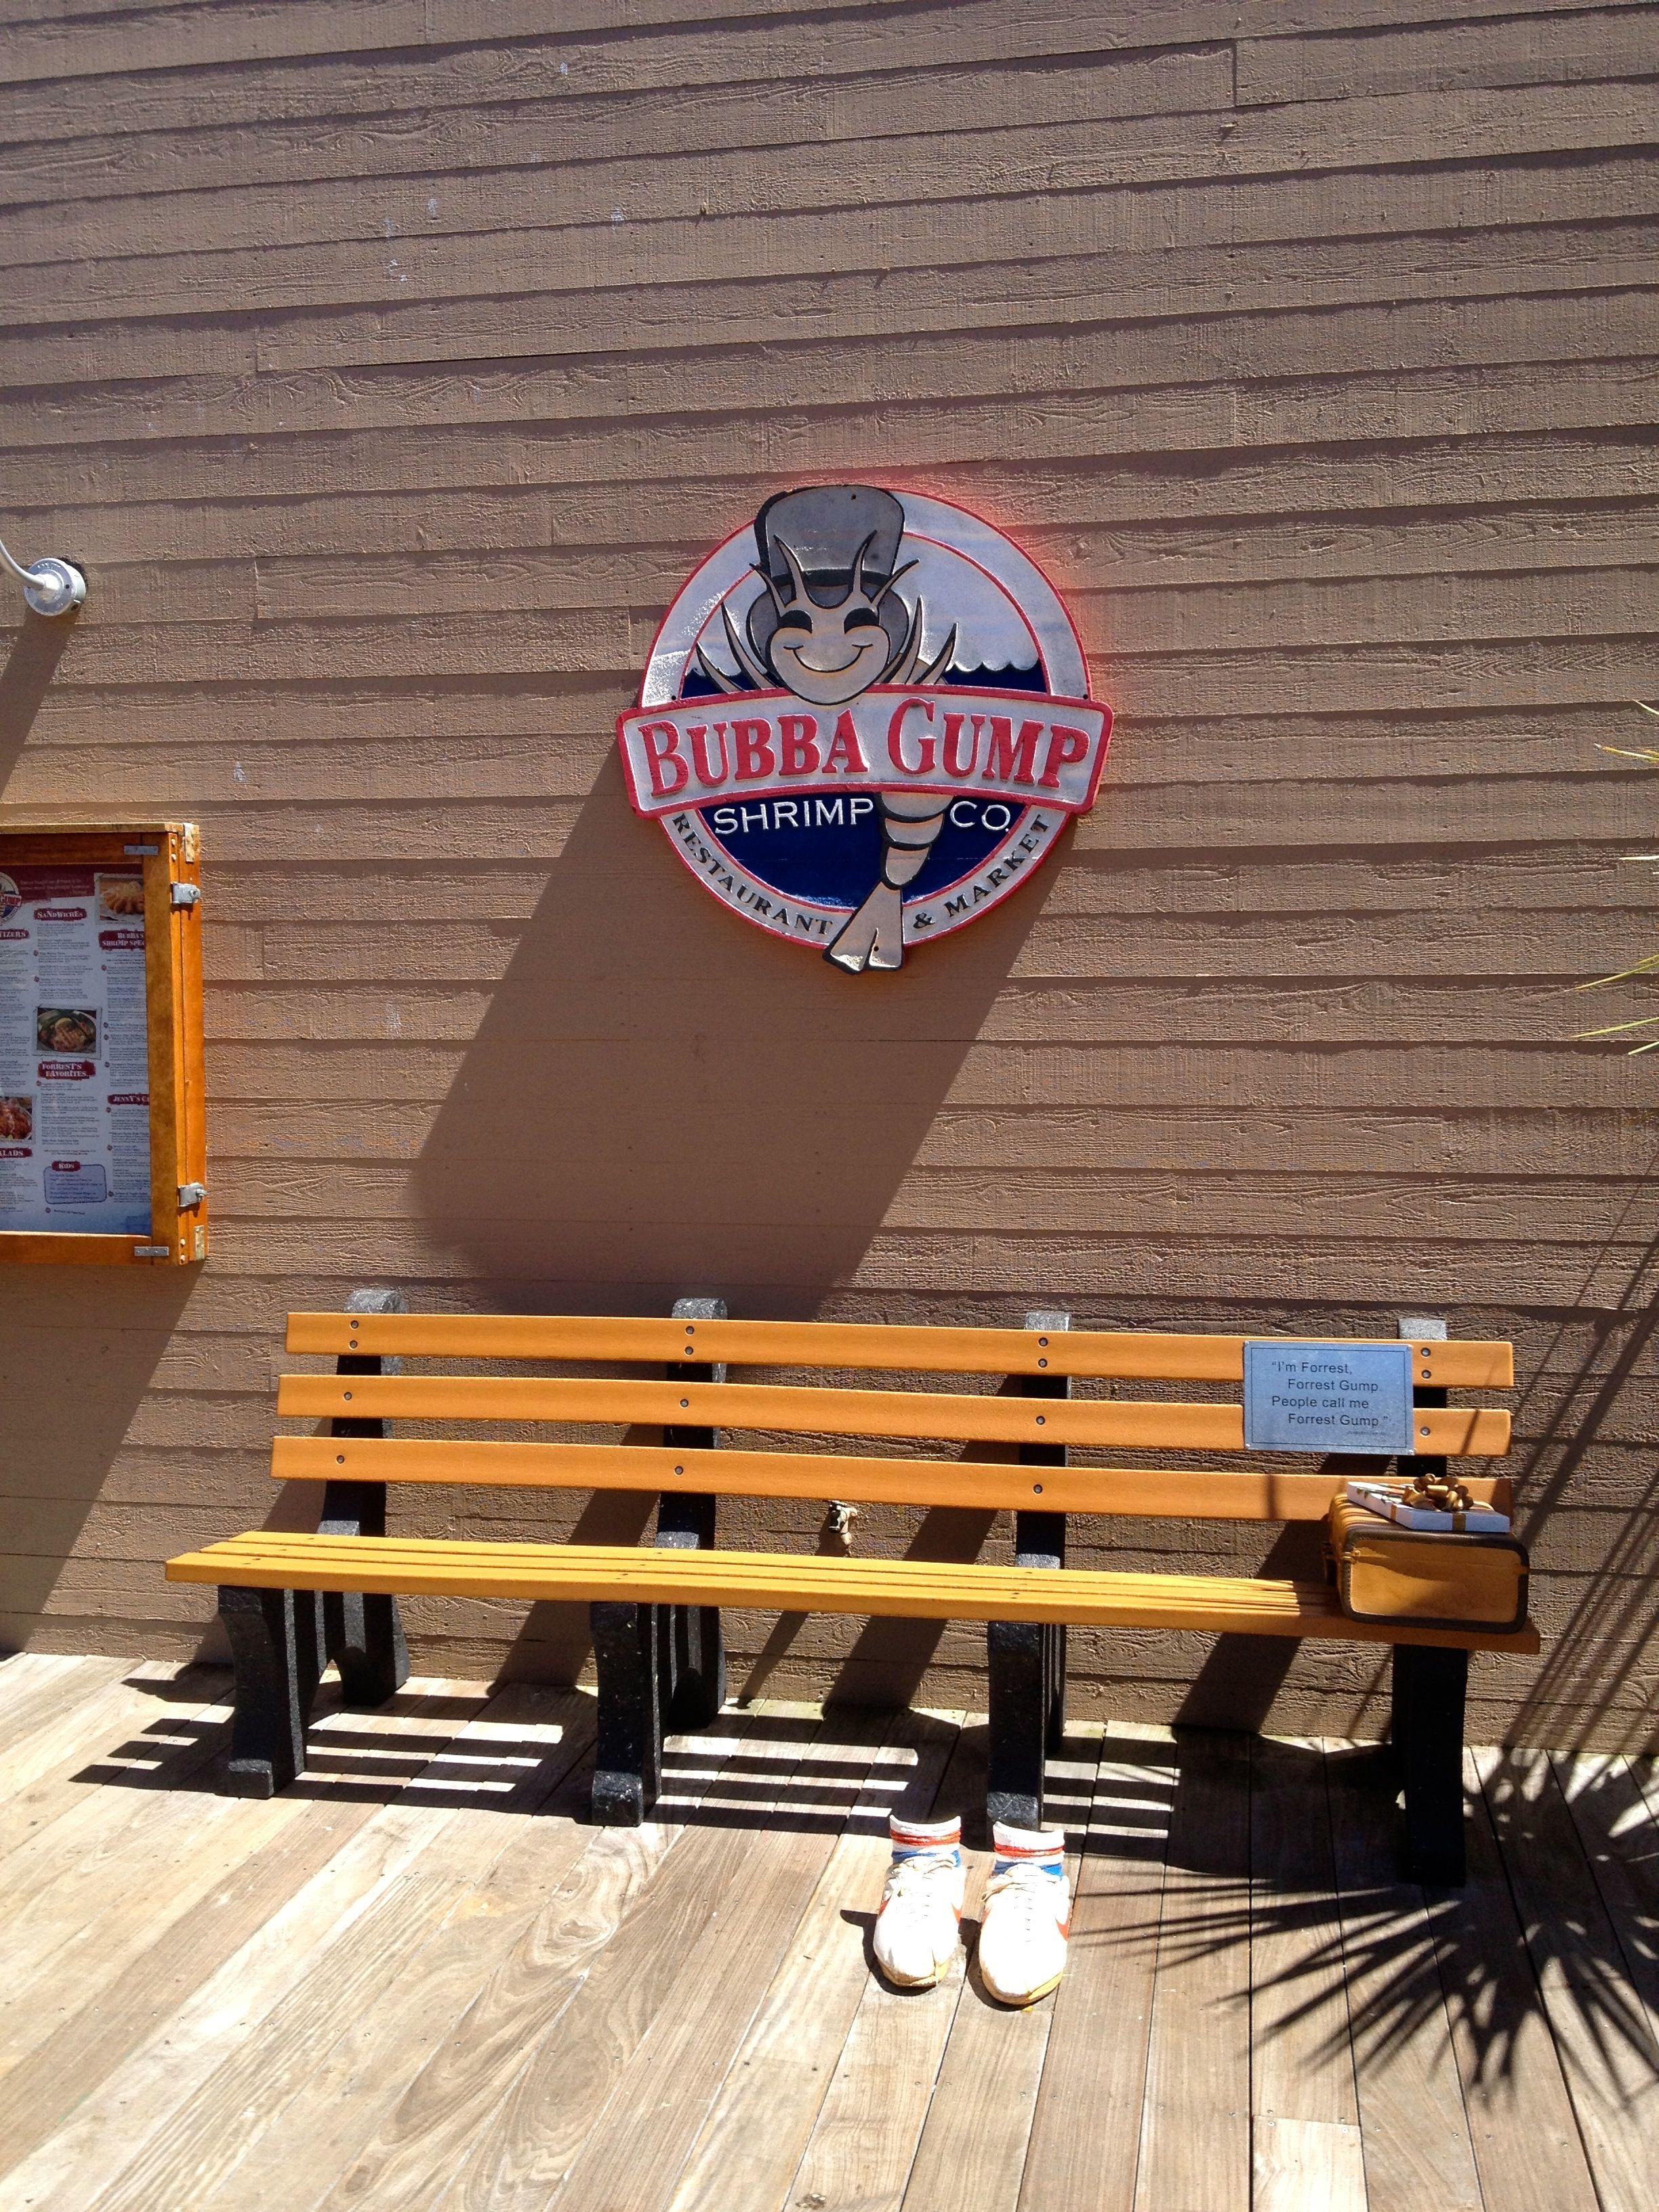 Bubba Gump Shrimp Co Fishermanu0027s Wharf San